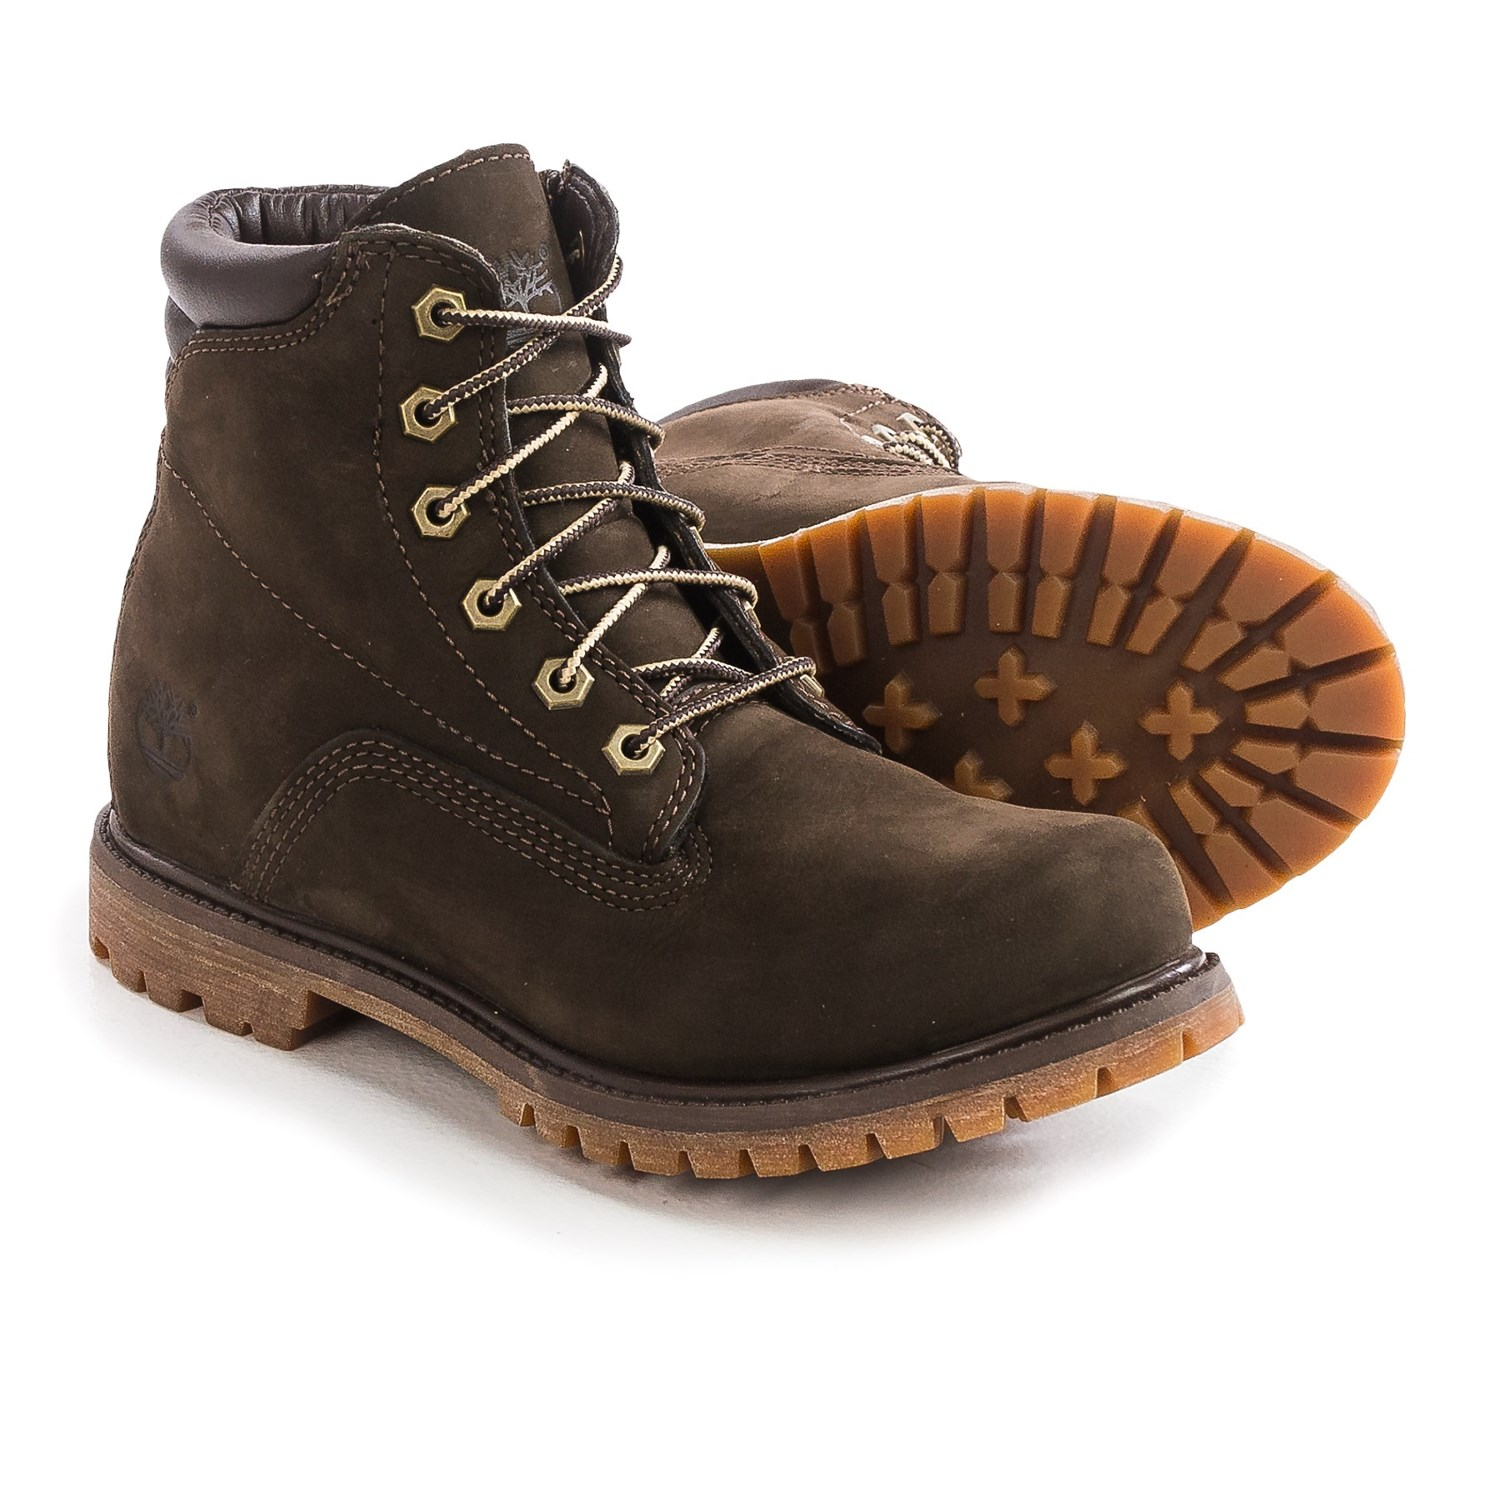 womens chocolate brown timberland boots - Bye Bye Laundry c176ede0db